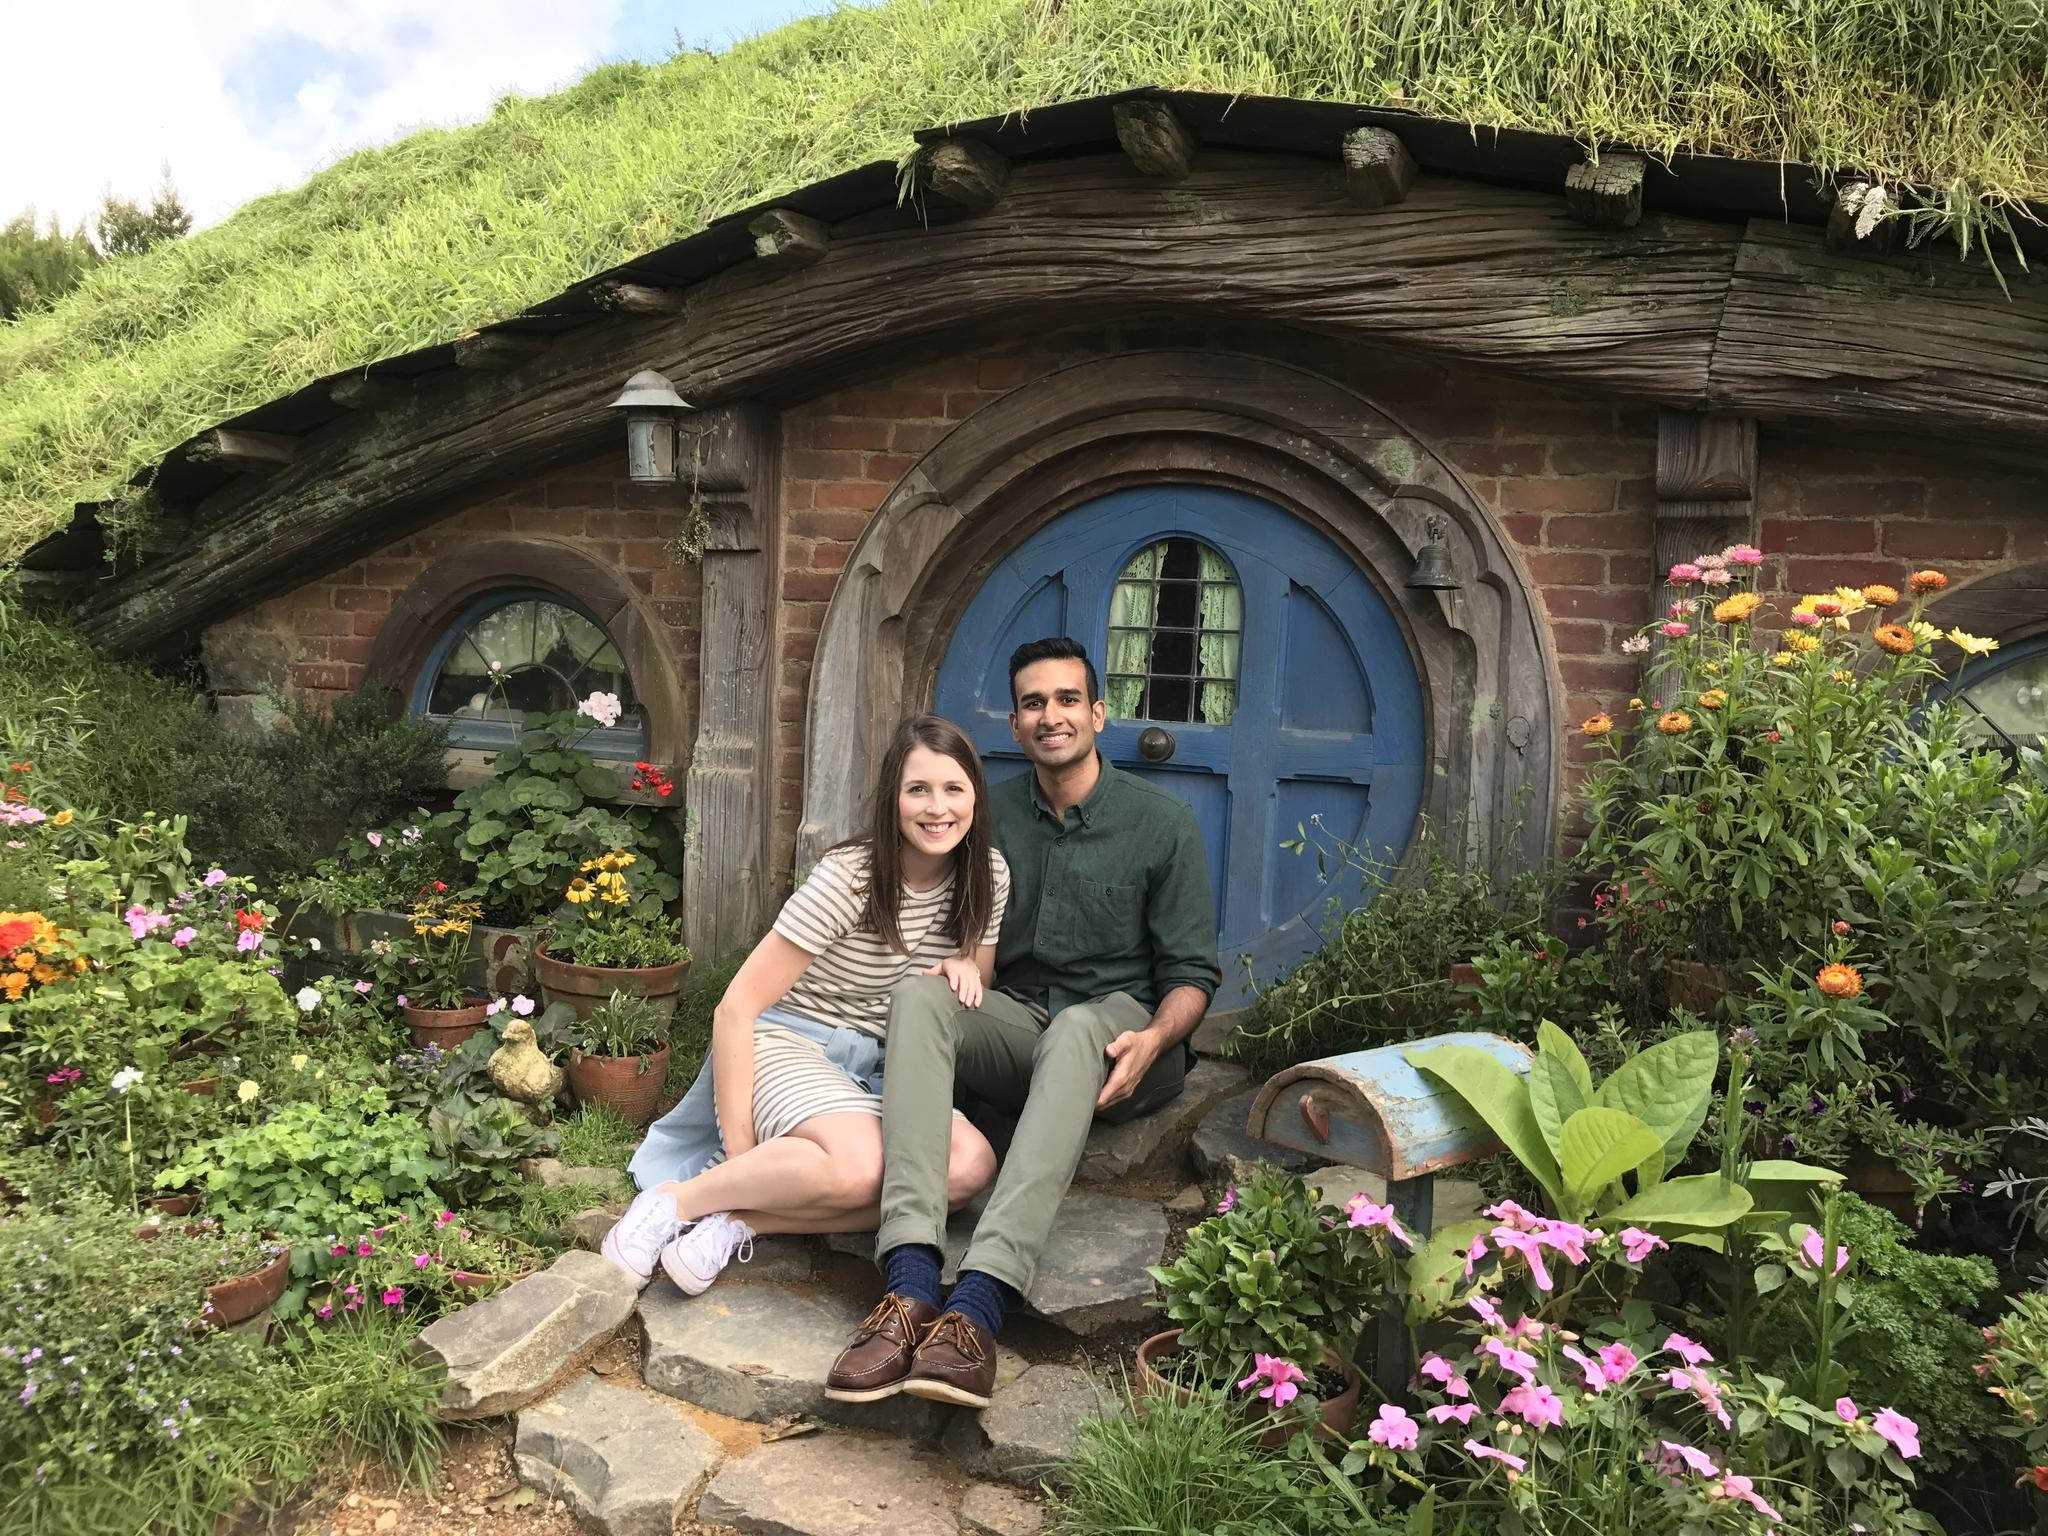 Shawn's Lord of the Rings dreams came true on our trip to The Shire in New Zealand